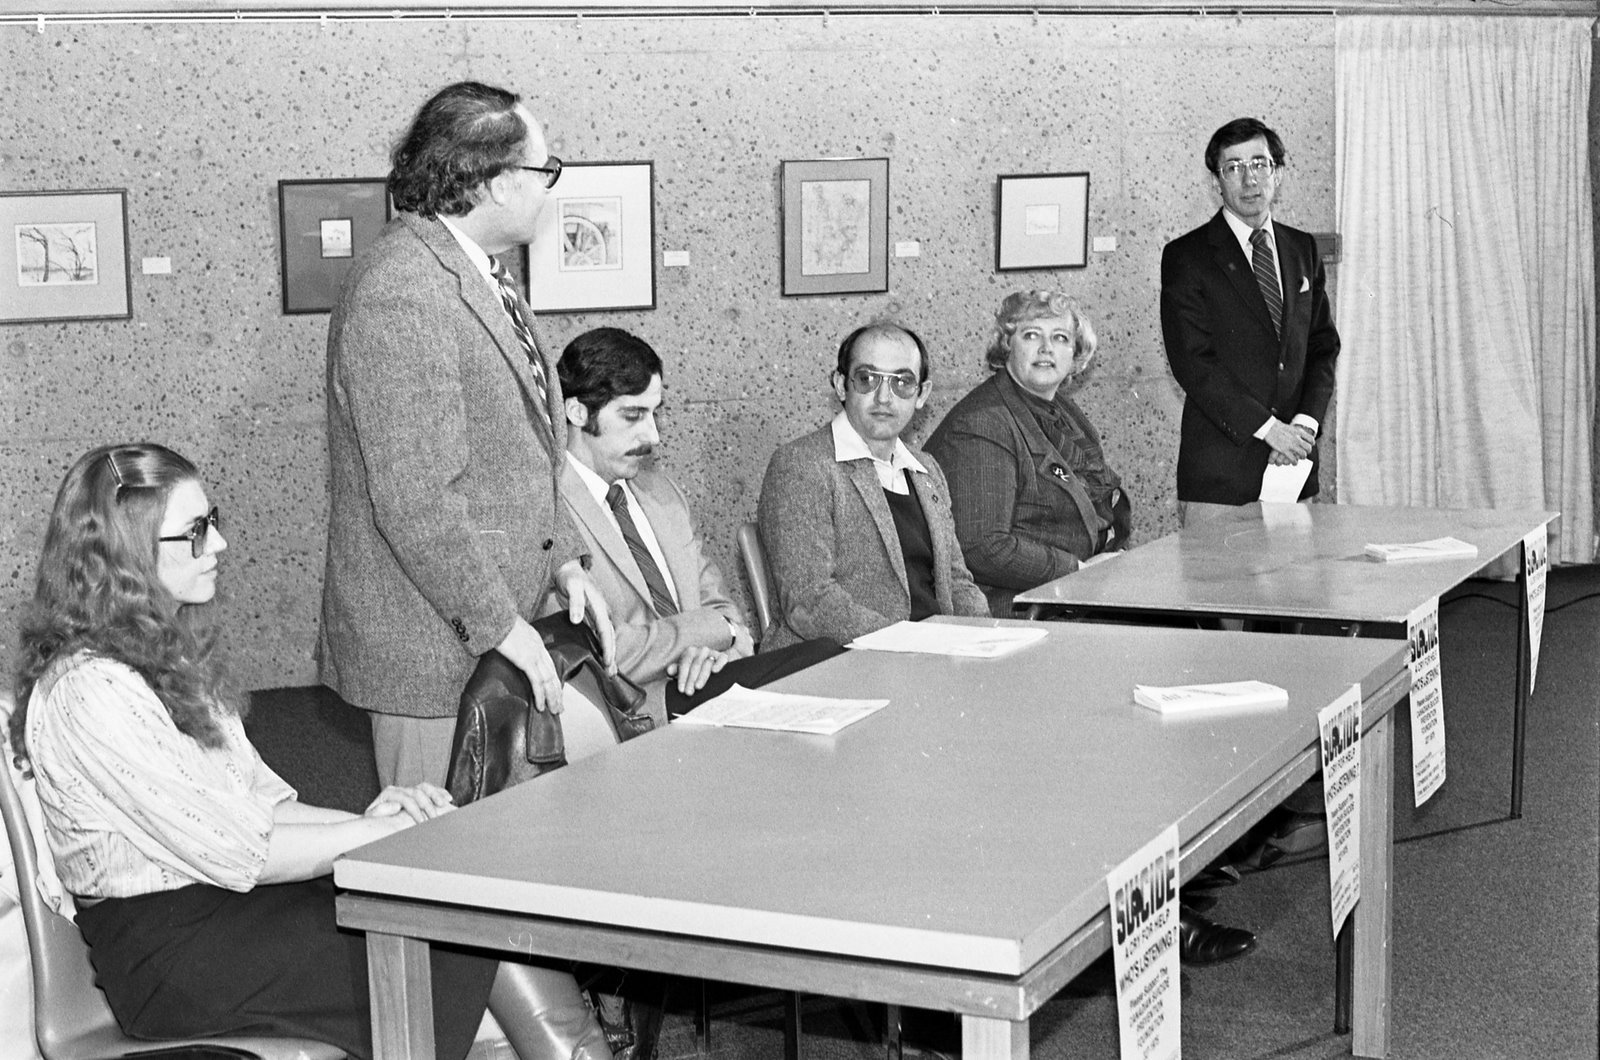 From left to right: Dr. Jean Collins, founder of the Samaritans; Dr. Menno Boldt, President; Dr. Robert Arms, U of L Psychologist; Tom Wickersham, City of Lethbridge Firefighter (future Fire Chief and Alderman); Mary Oordt, Vice President, CMHA Board member; Bob Tarleck, teacher, Alderman and future Mayor of Lethbridge.